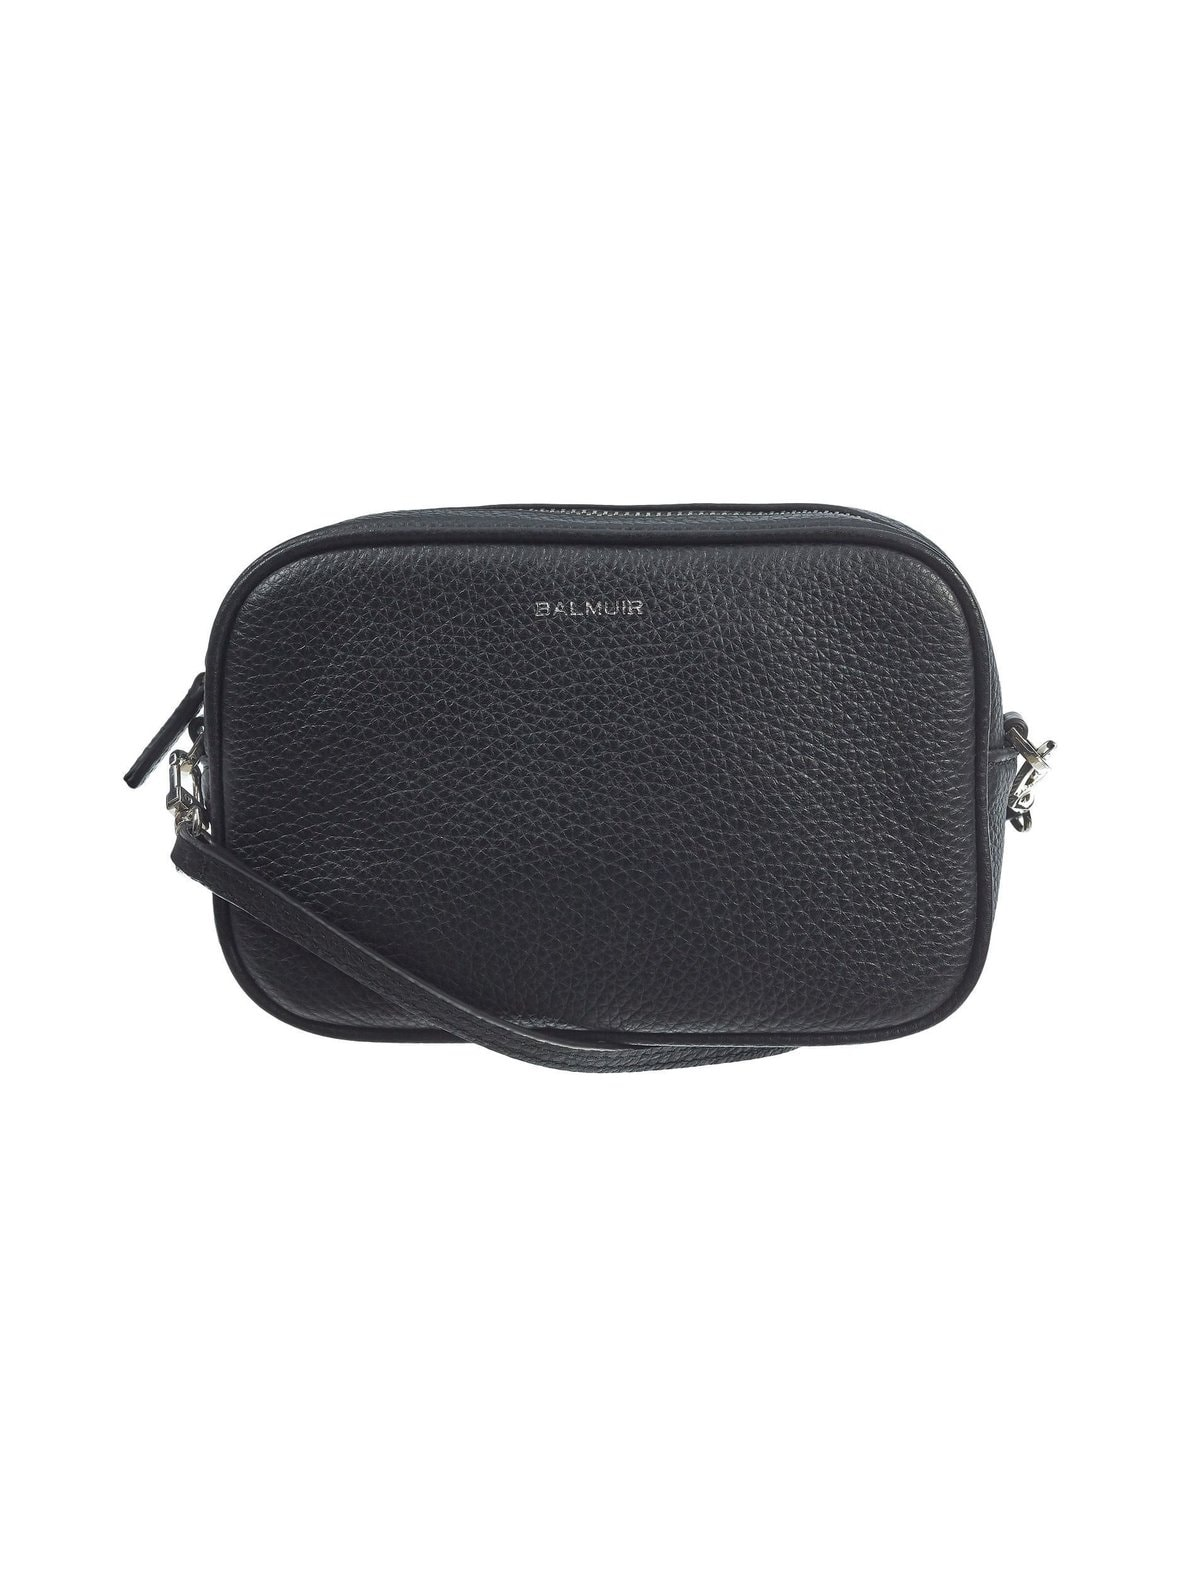 310S blacksilver Balmuir Elise Camera Bag nahkalaukku